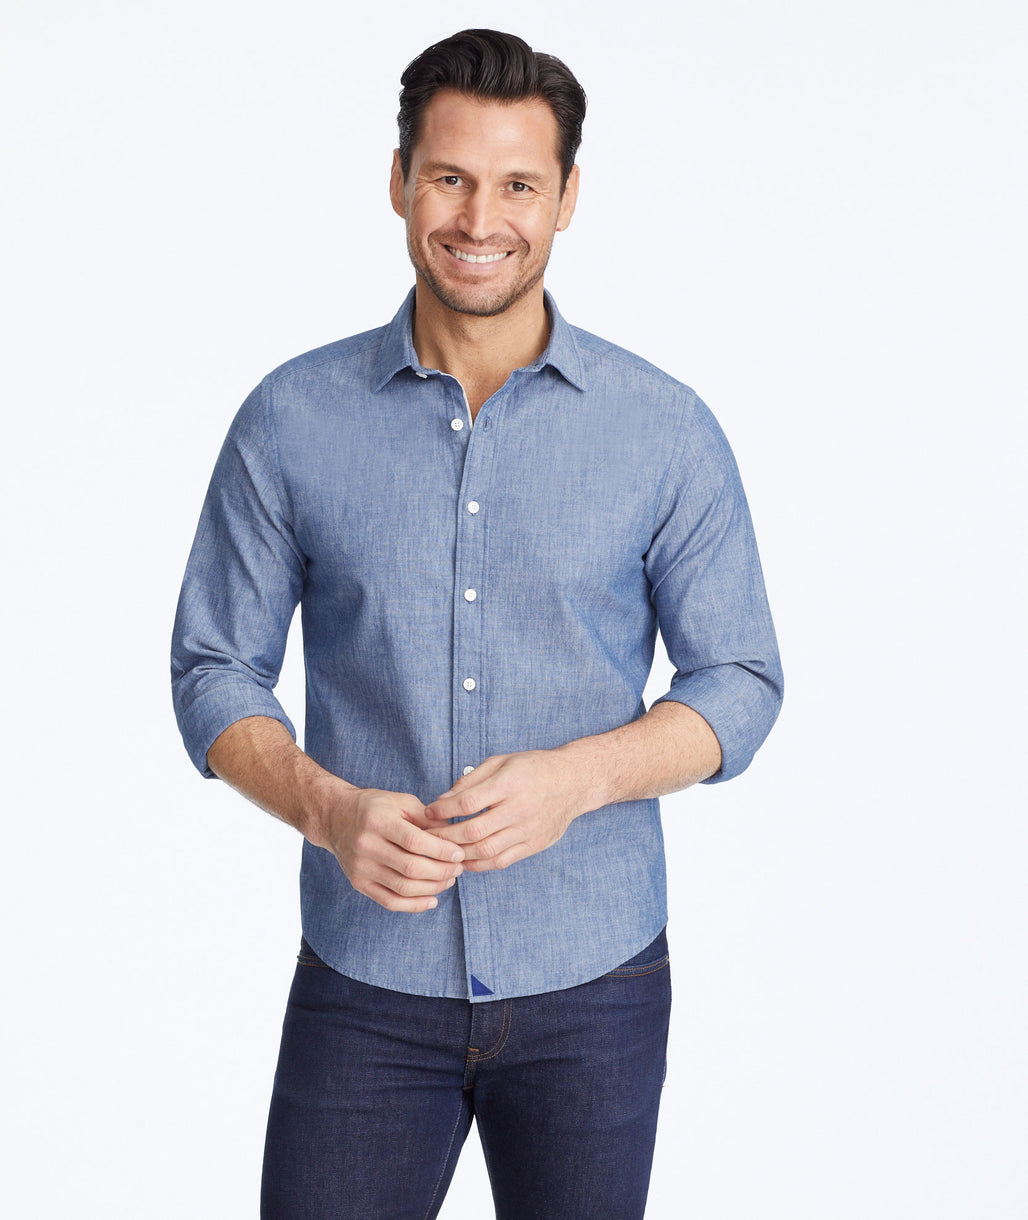 Model wearing a Blue Chambray Gravner Shirt